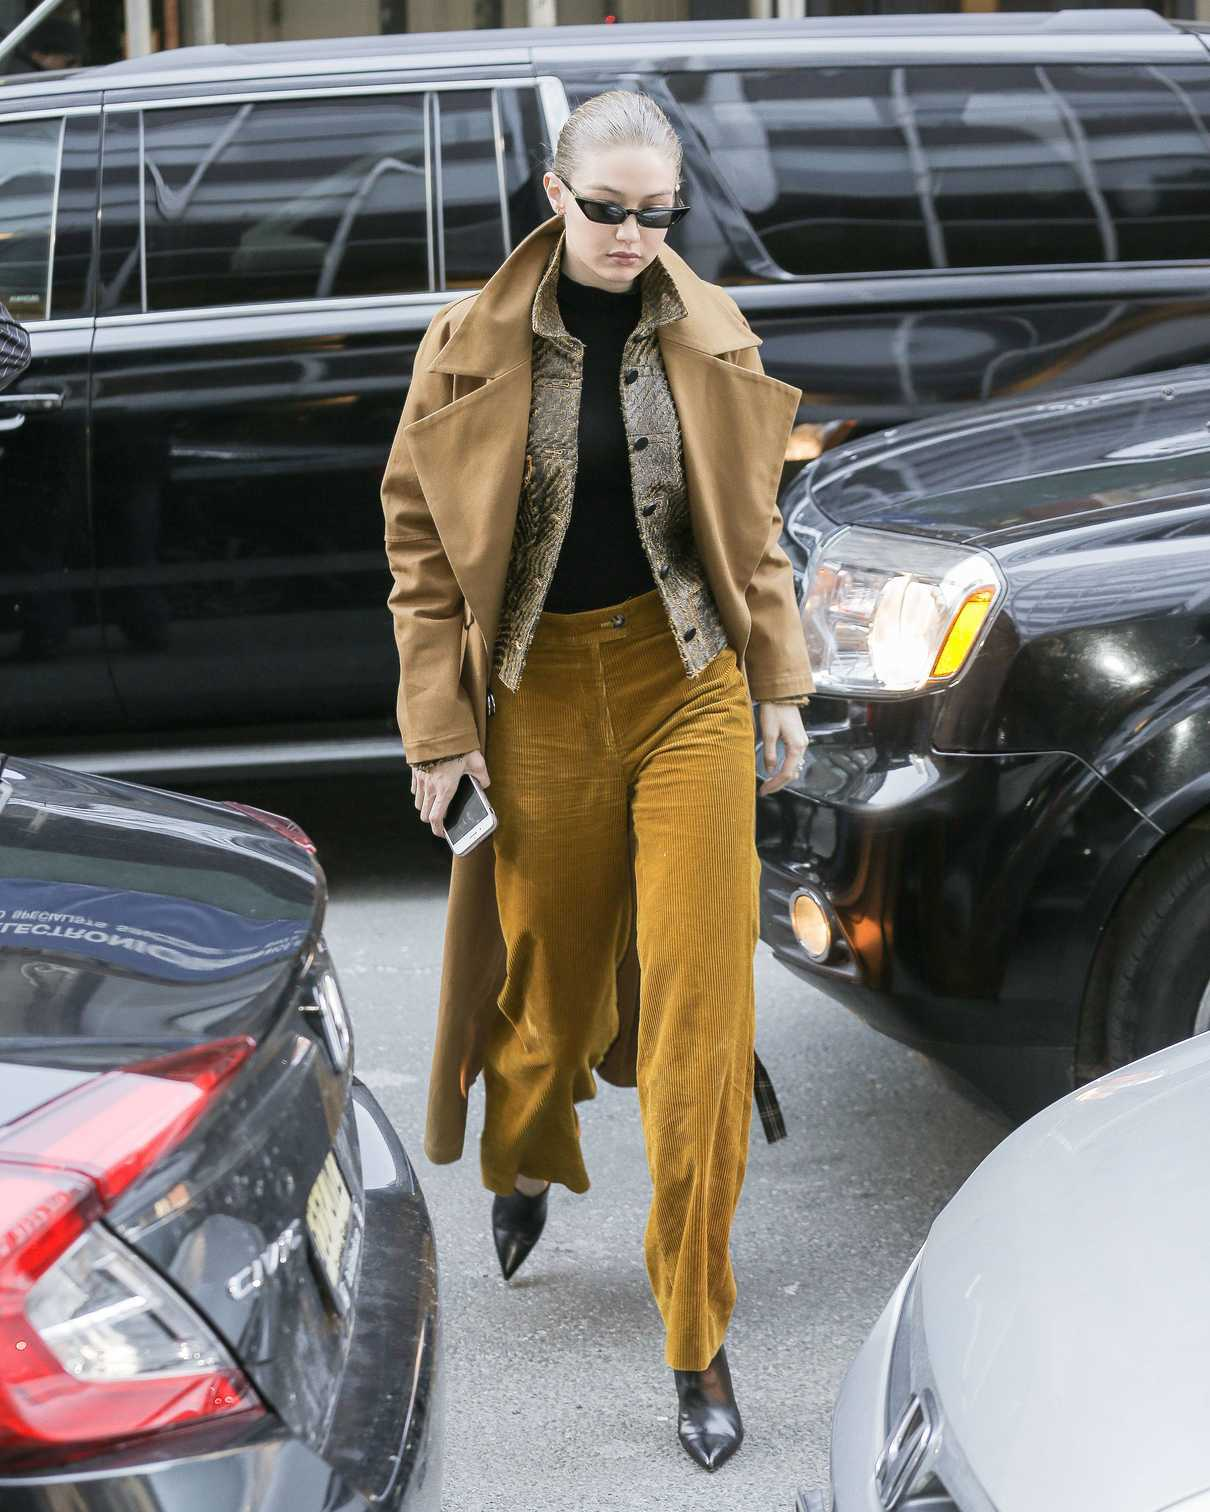 Gigi Hadid Wears a Beige Coat Out in New York City 02/02/2018-4